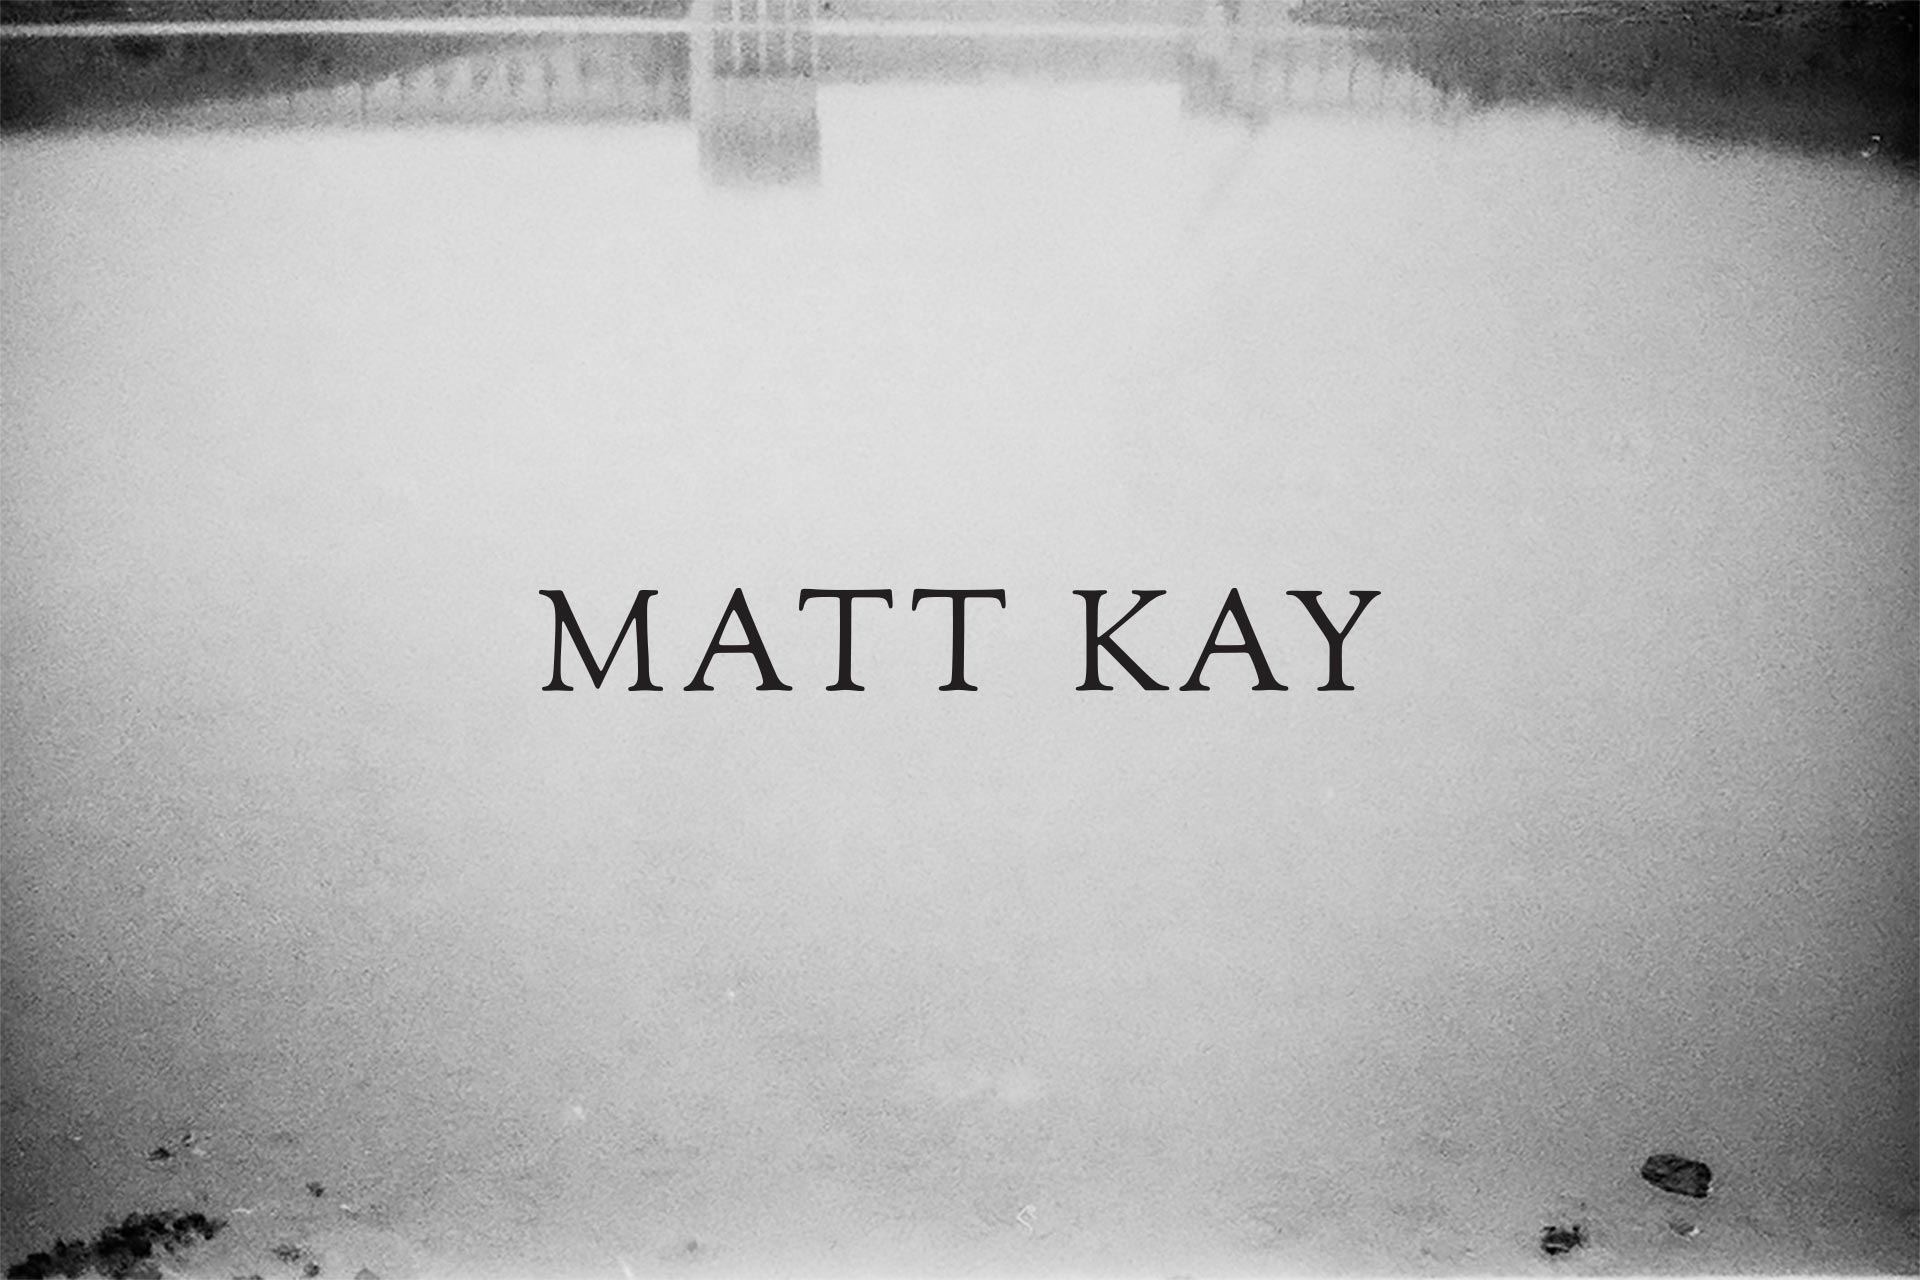 Matt Kay website